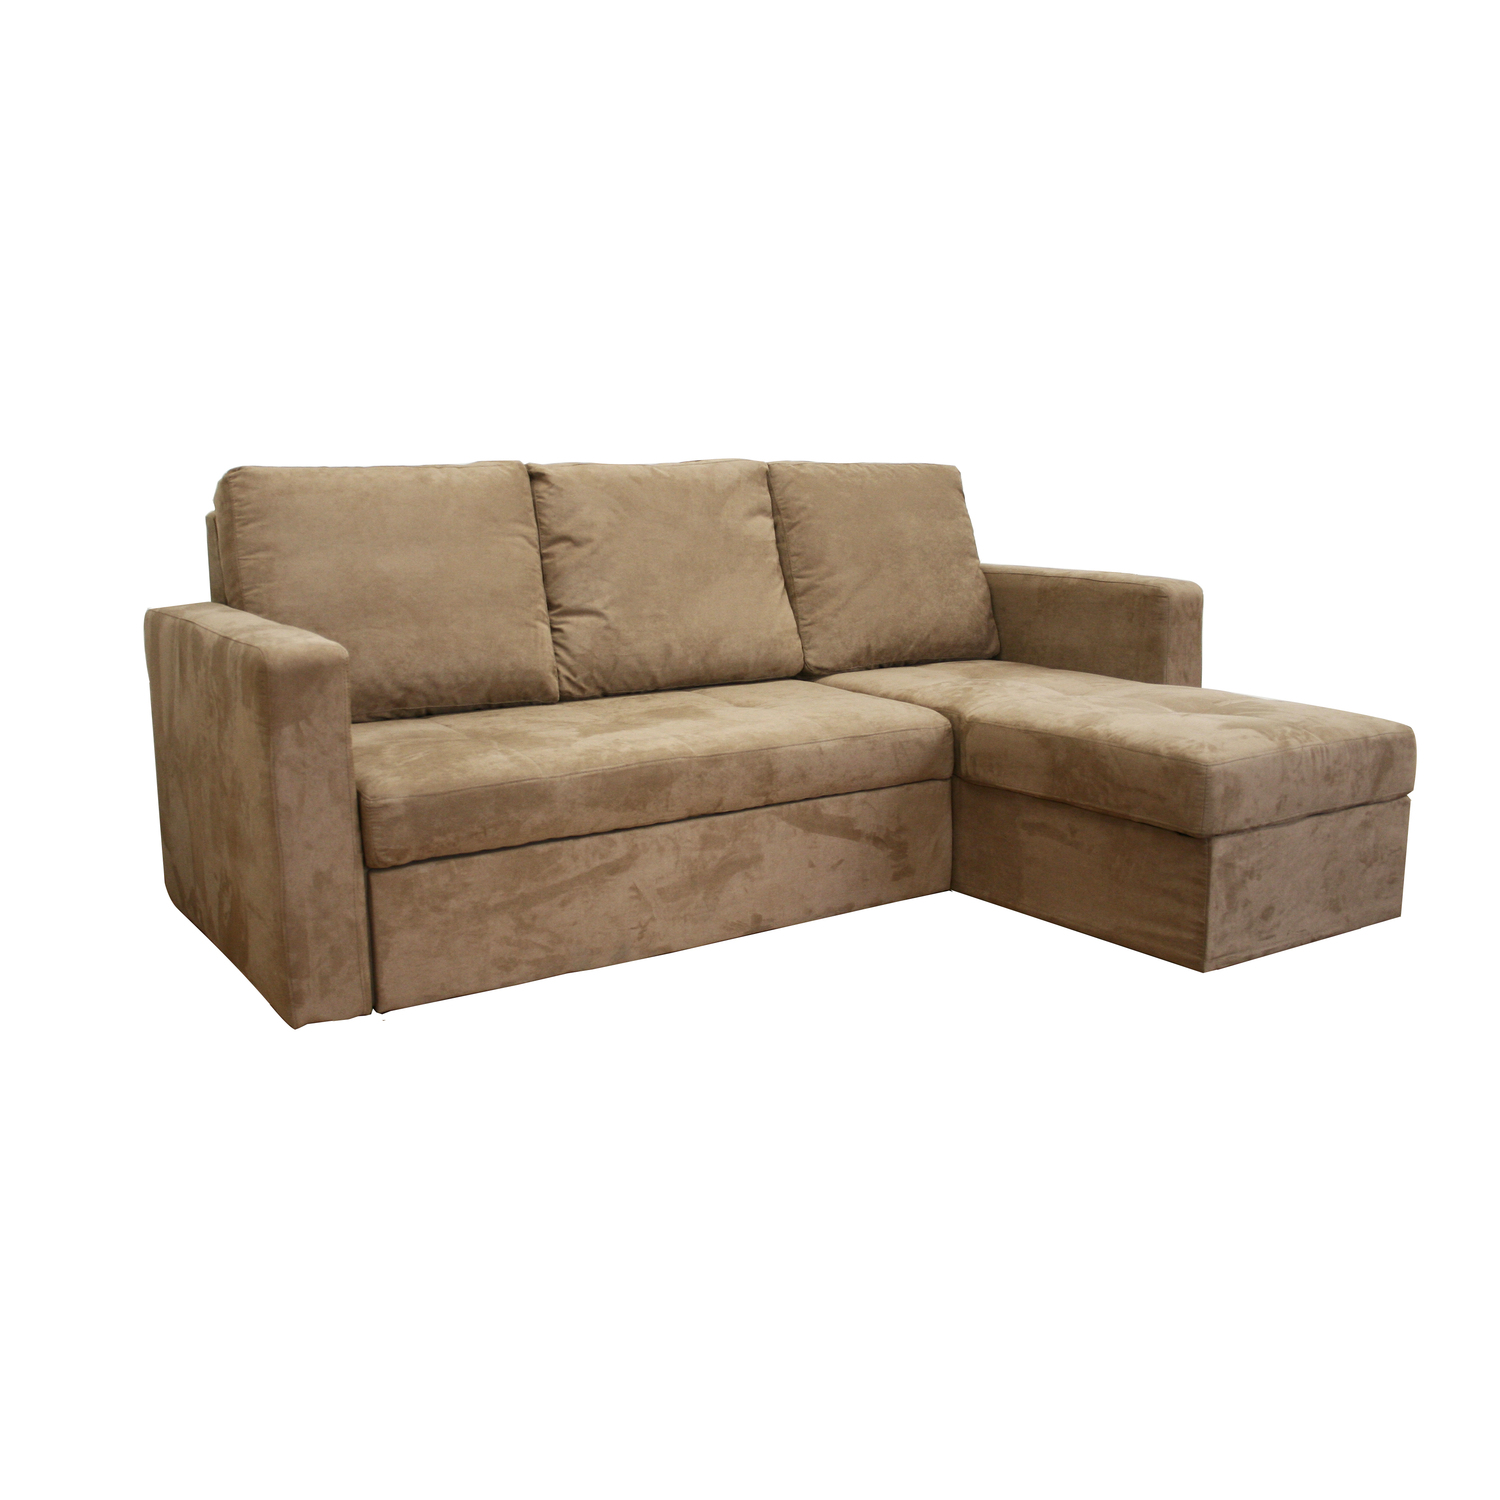 Whole Sale Interiors Linden Tan Microfiber Convertible